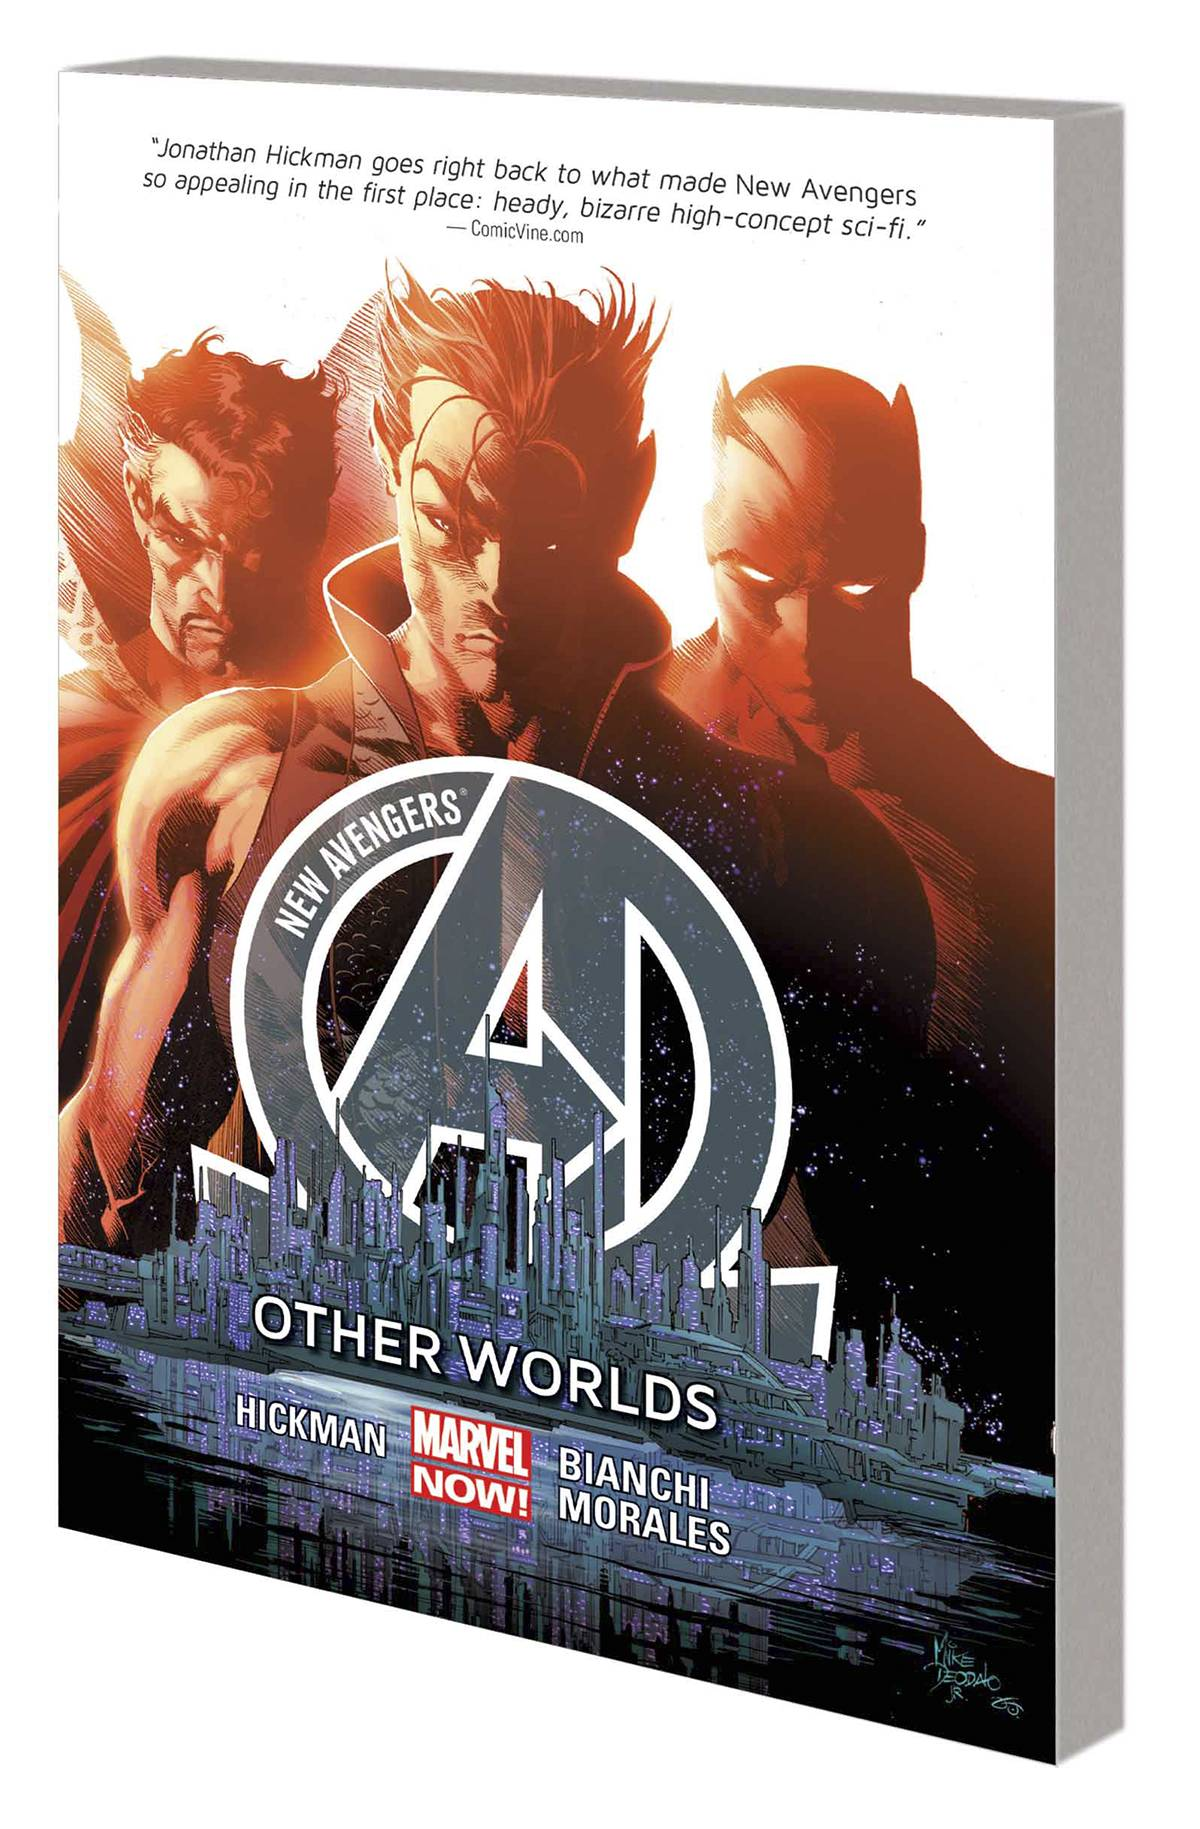 NEW AVENGERS PREM HC VOL 03 OTHER WORLDS